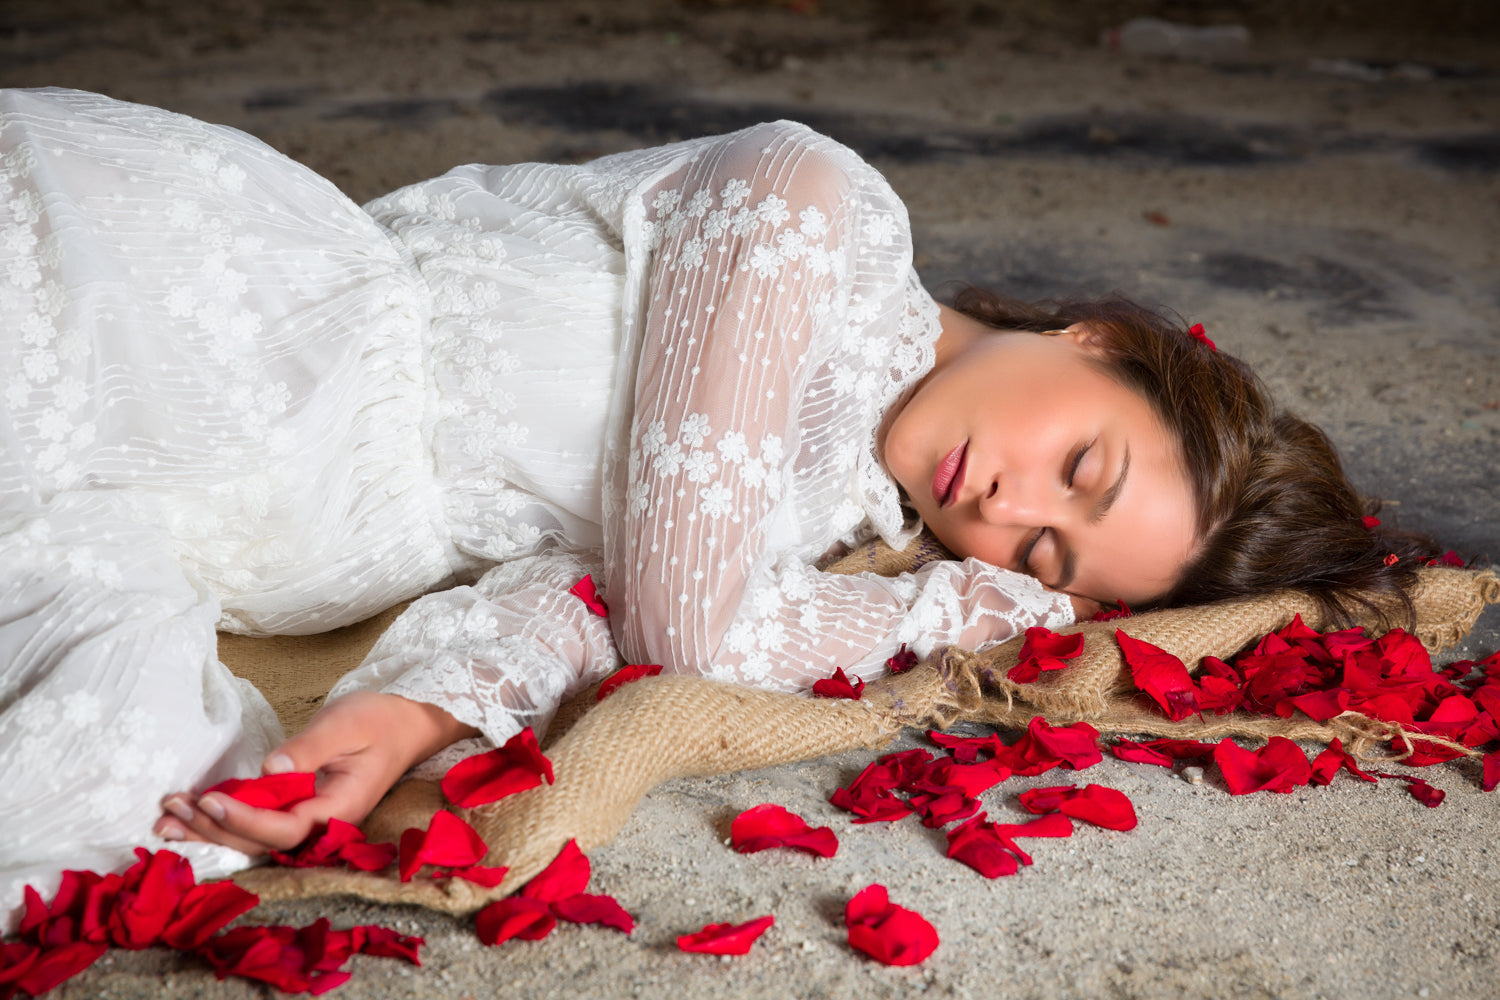 Girl laying on floor with roses